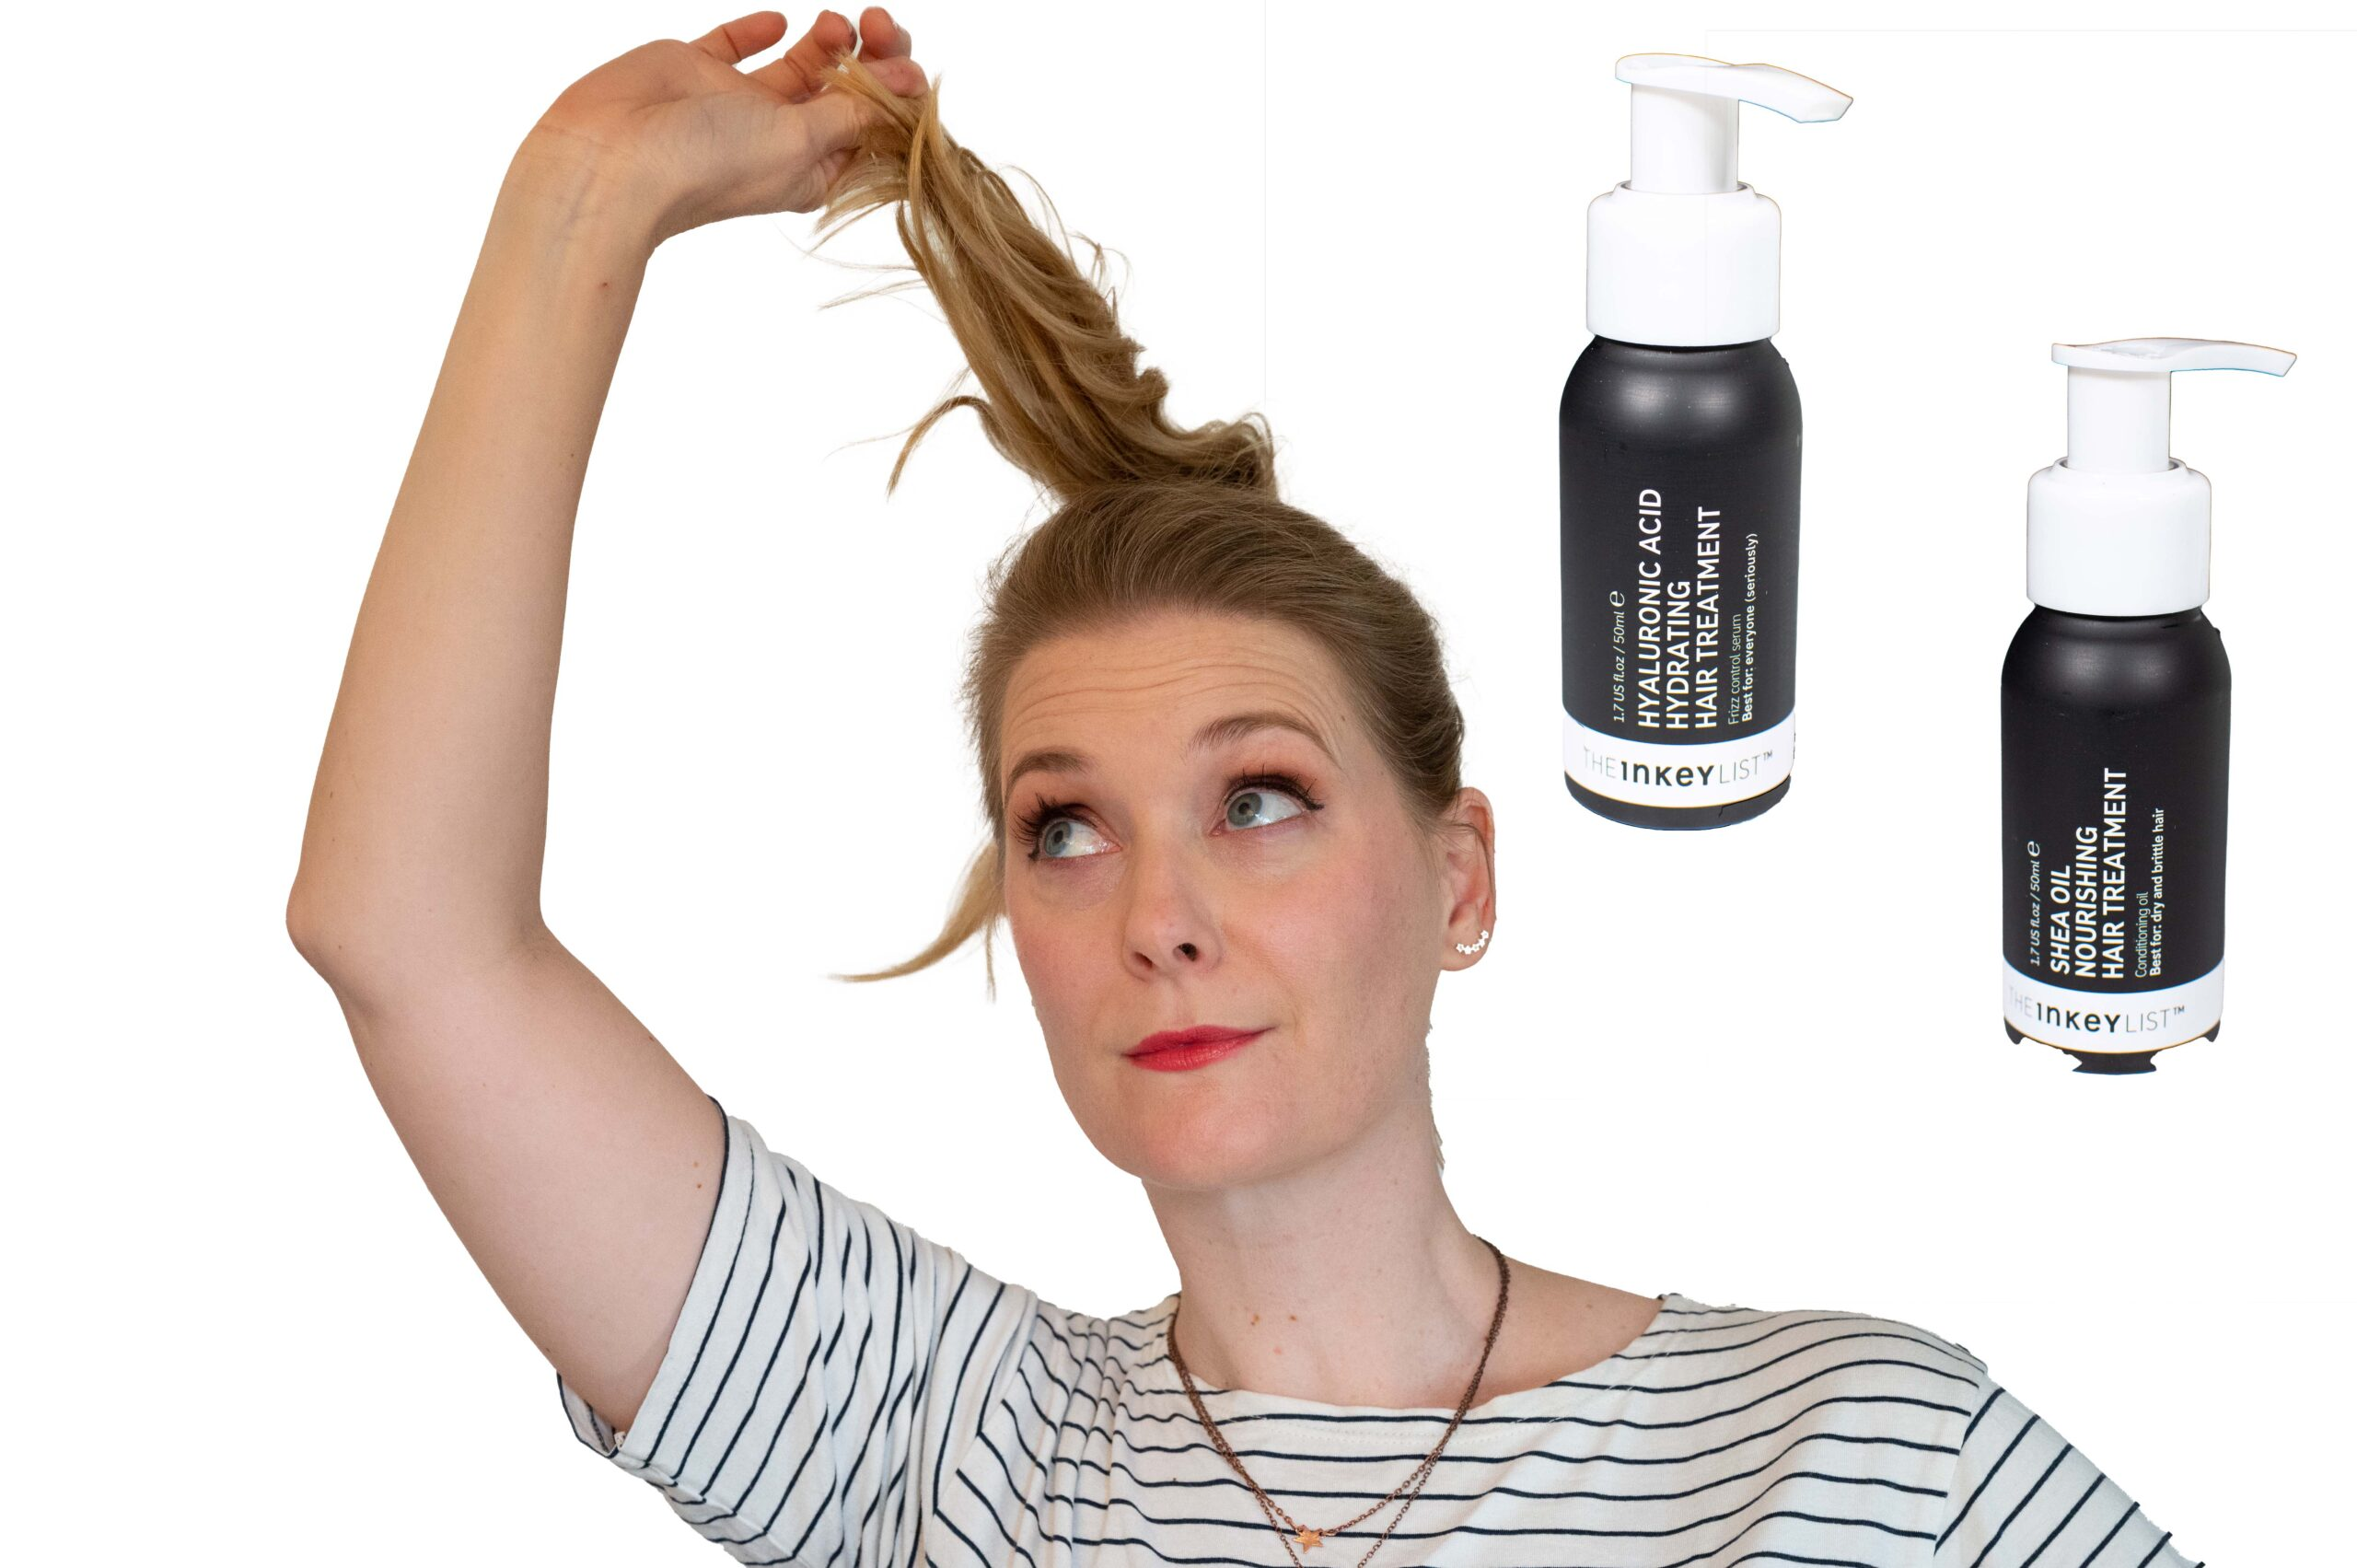 The Inkey List Hair Treatments Review